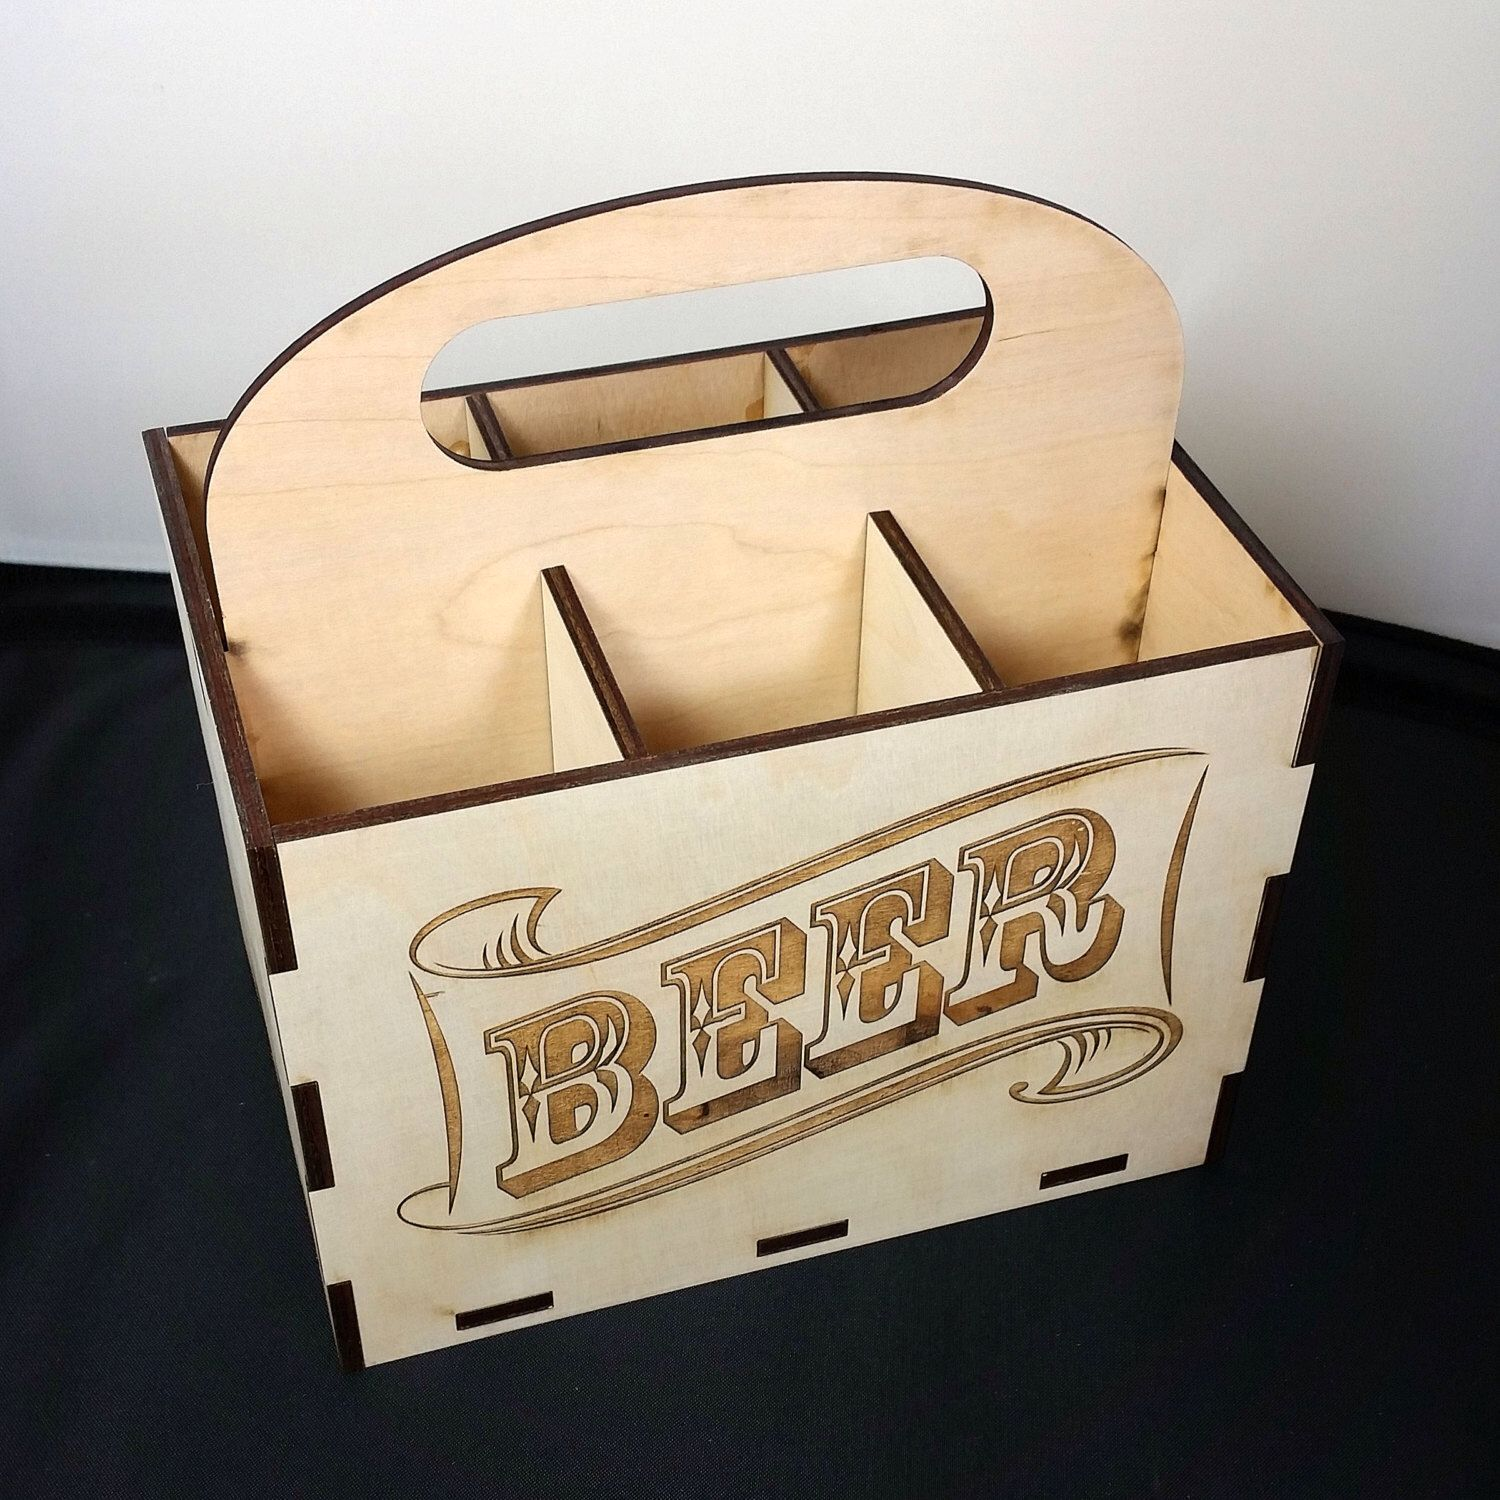 BEER CASE 6 pack laser cut wood by nygaarddesign on Etsy https://www.etsy.com/listing/207096624/beer-case-6-pack-laser-cut-wood